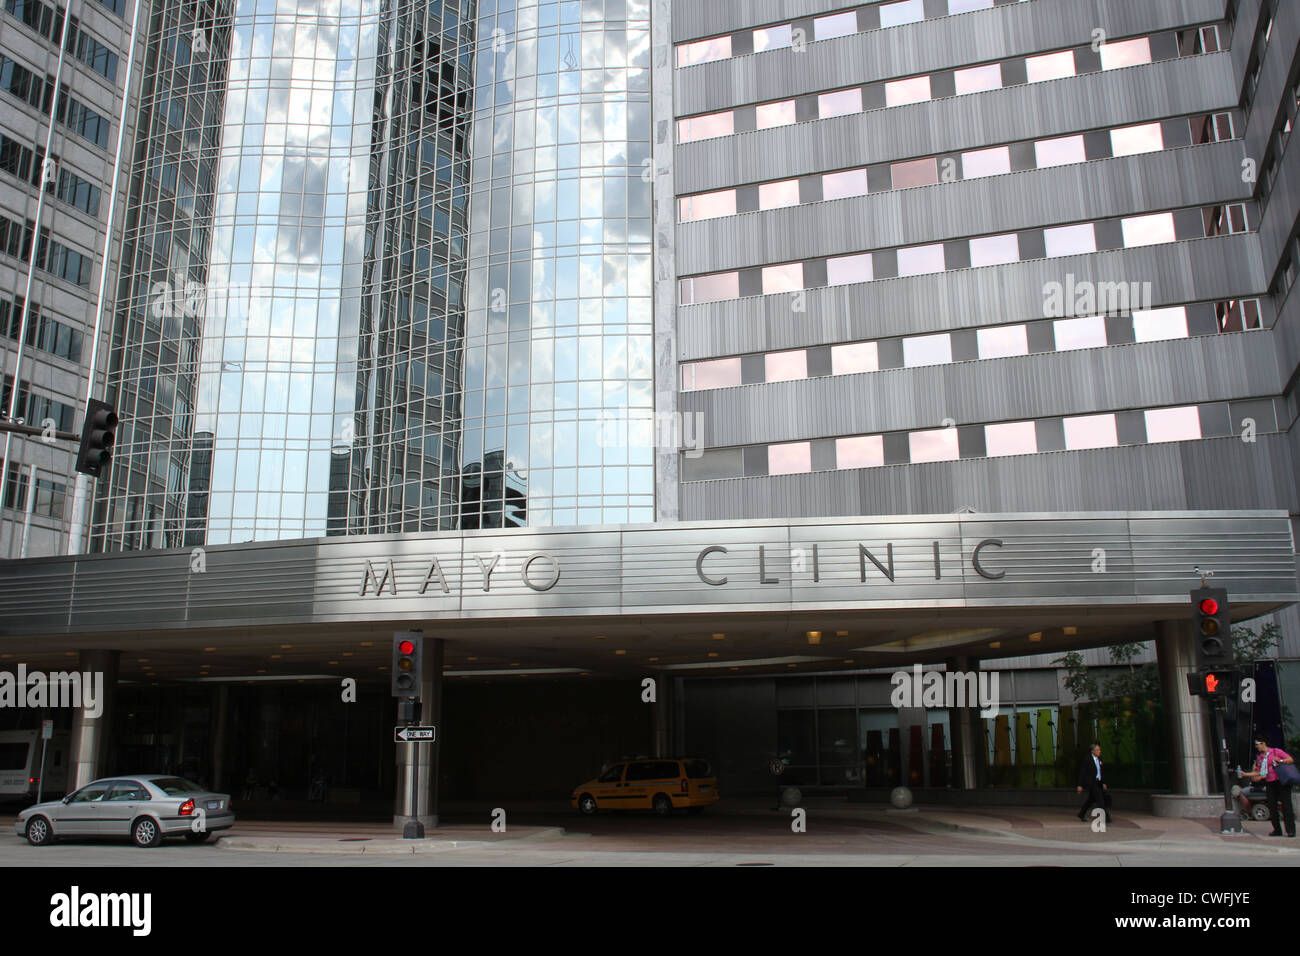 The Mayo Clinic in Rochester, Minnesota Stock Photo: 50131298 - Alamy